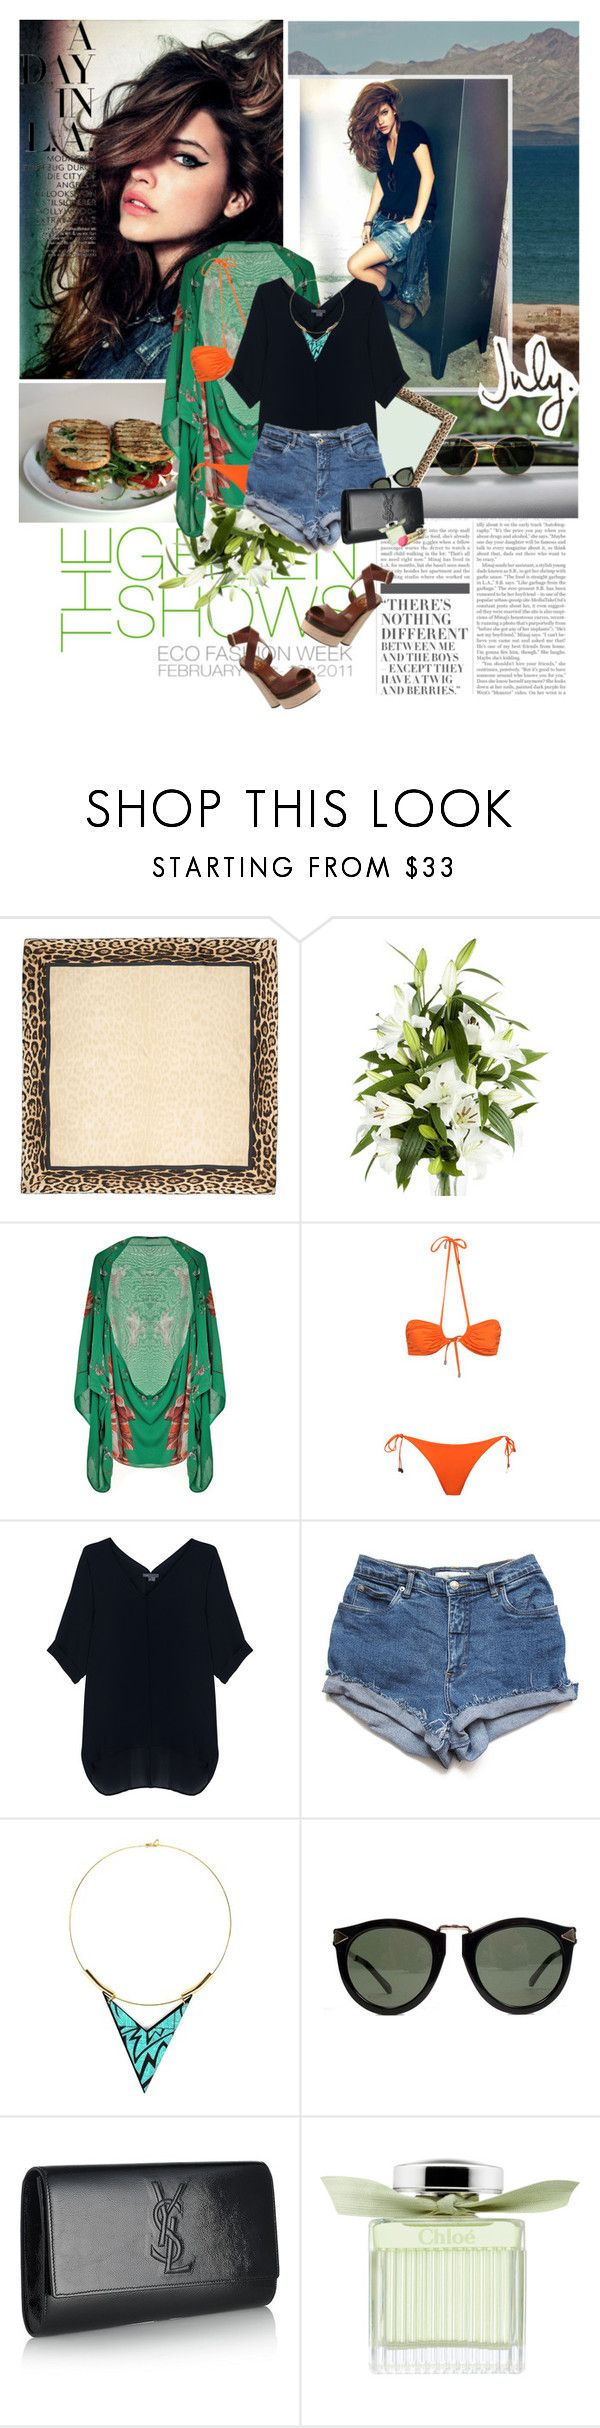 """""California girls. We're unforgettable. Daisy Dukes. Bikinis on top."""" by are-you-with-me ❤ liked on Polyvore featuring Nicki Minaj, Roberto Cavalli, Alexander McQueen, Prism, Vince, Miss Wax, Karen Walker, Yves Saint Laurent, Chloé and L'Oréal Paris"